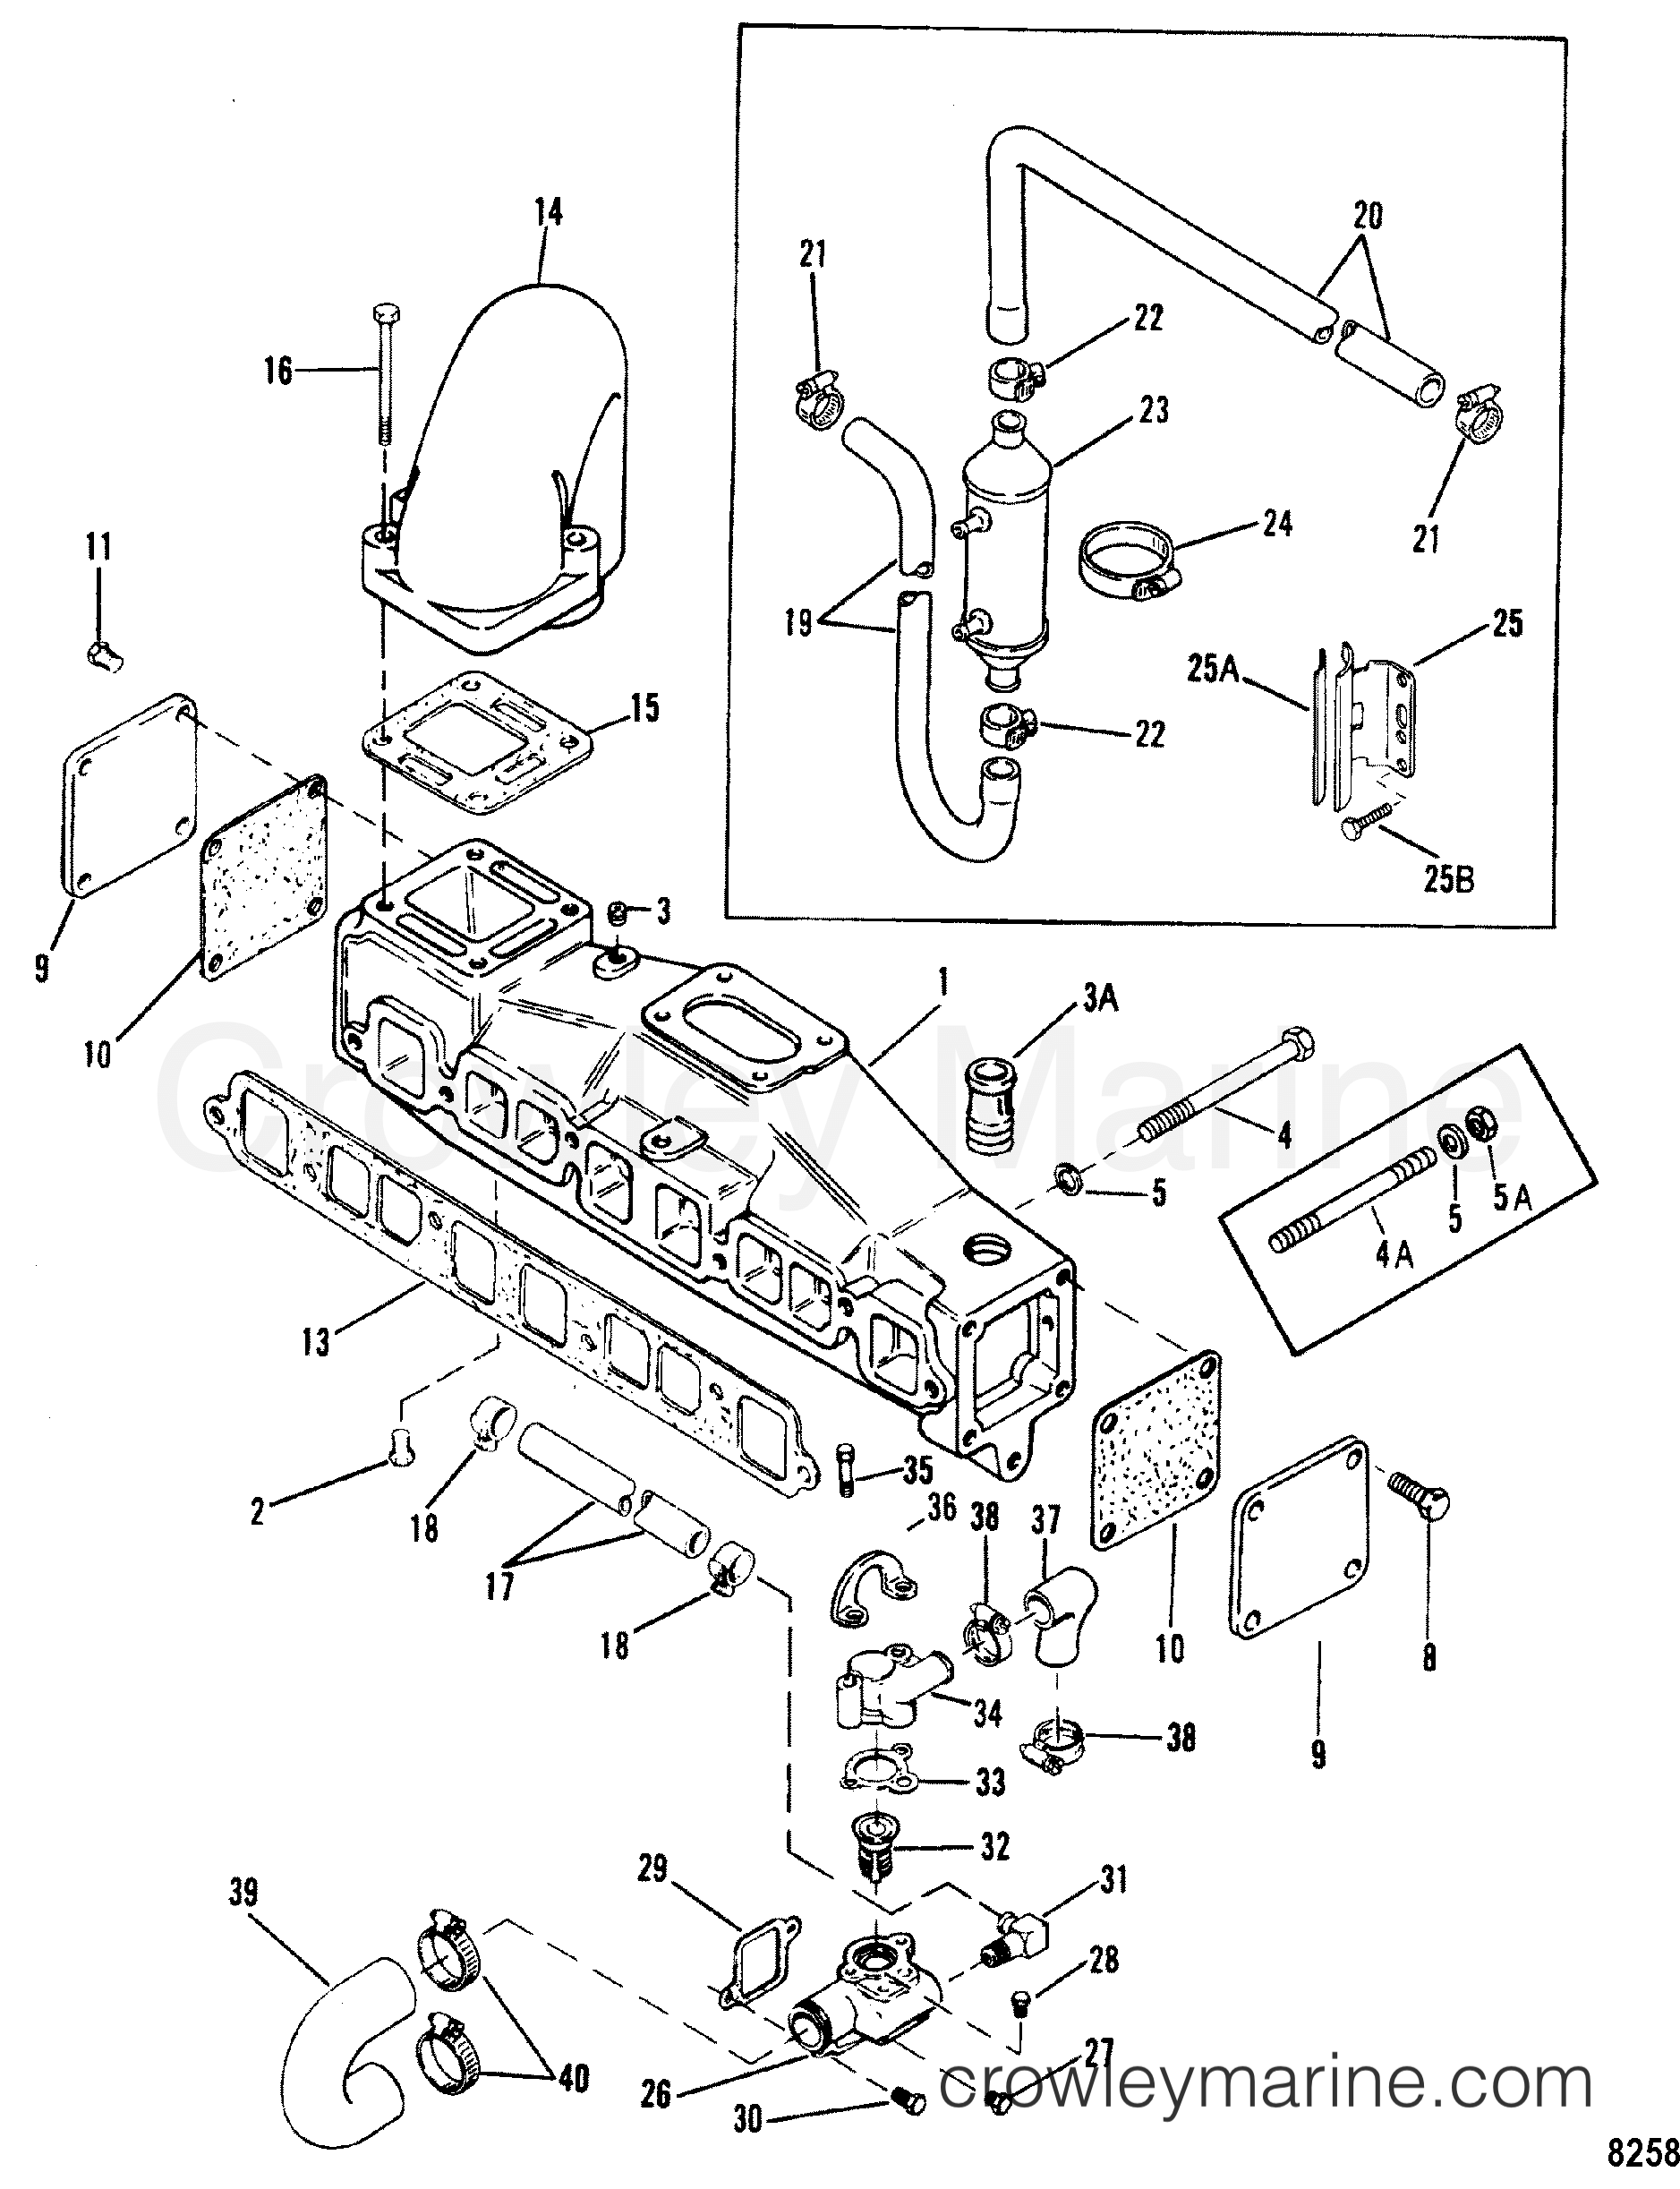 Exhaust Manifold And Water System With End Caps 3 0lx